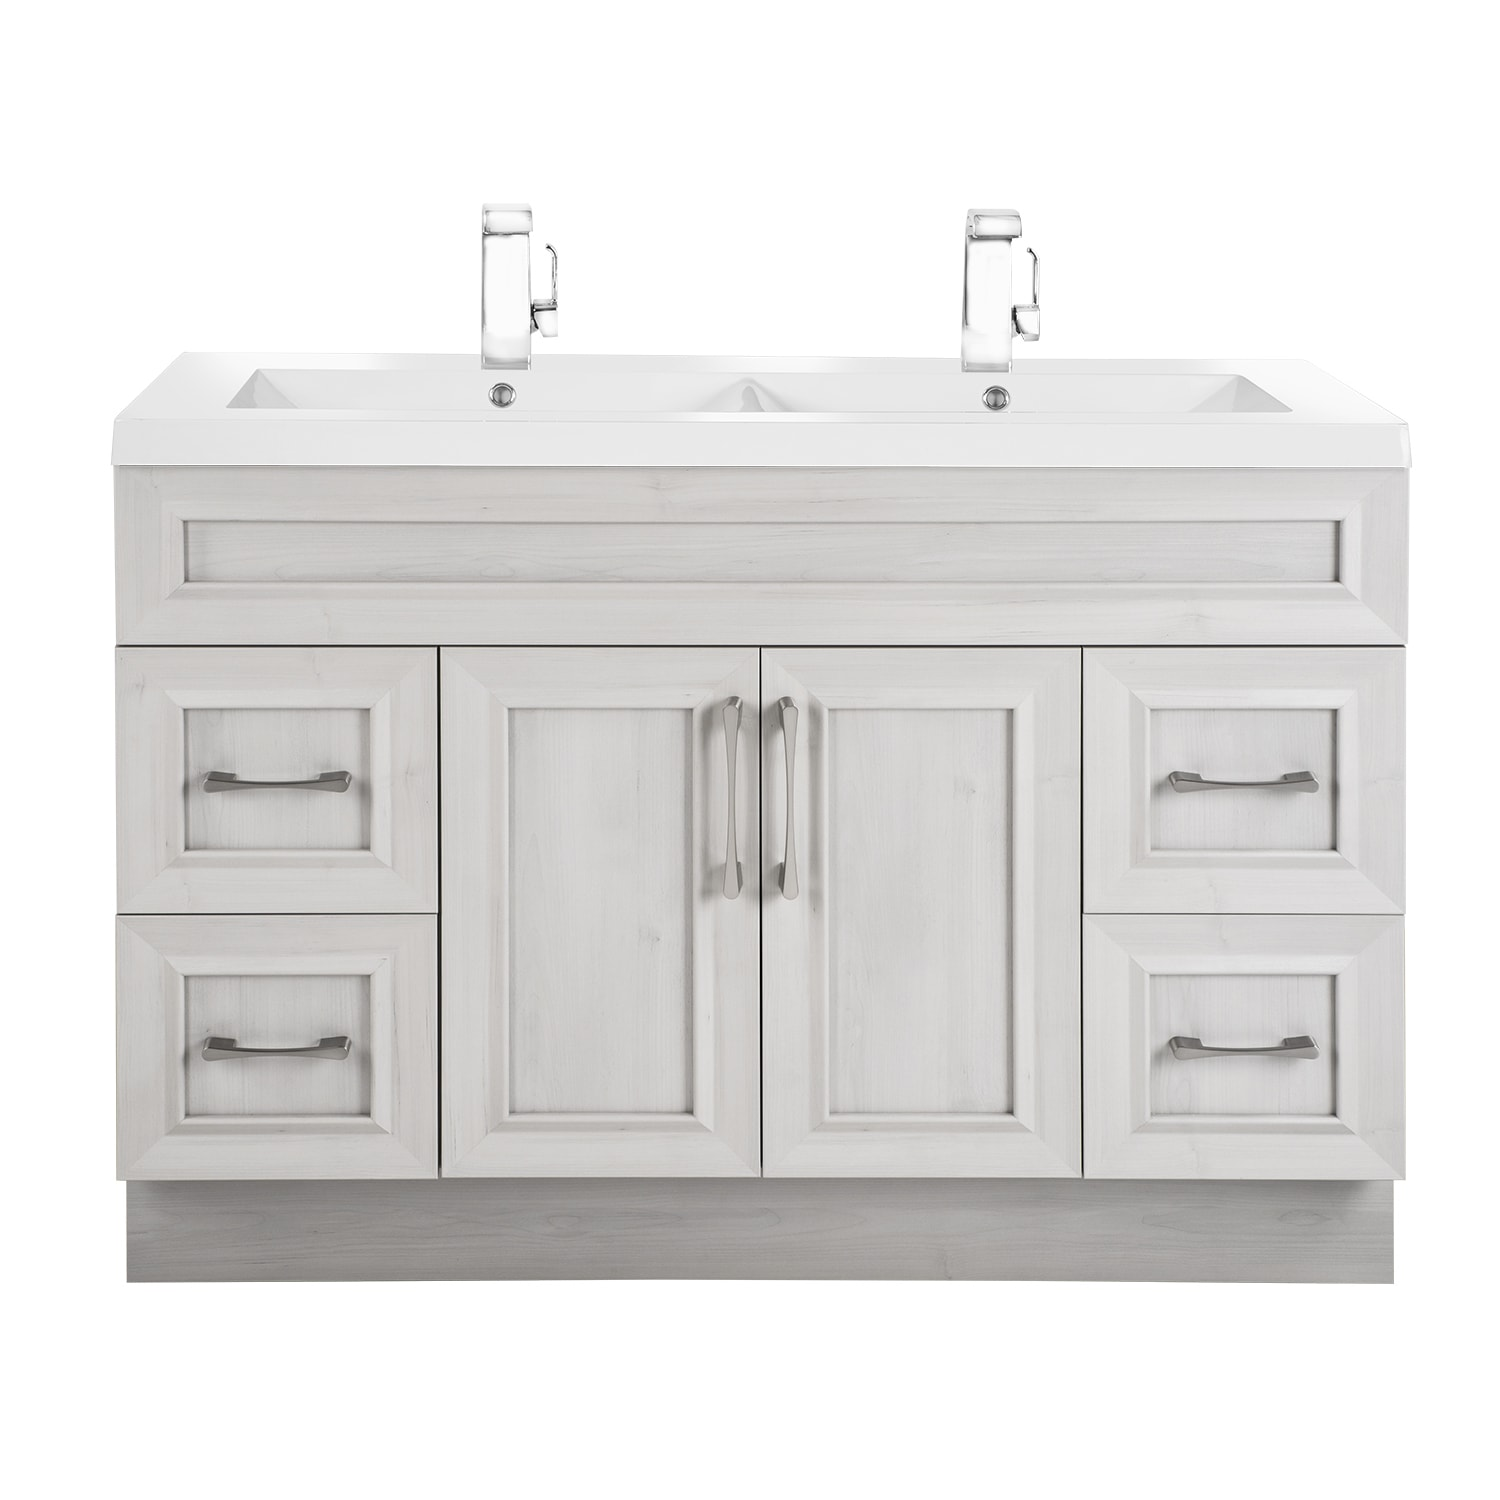 vanities fv textures contour h in x vanity with acrylic top kitchen basin p collection tops cutler bath white w d